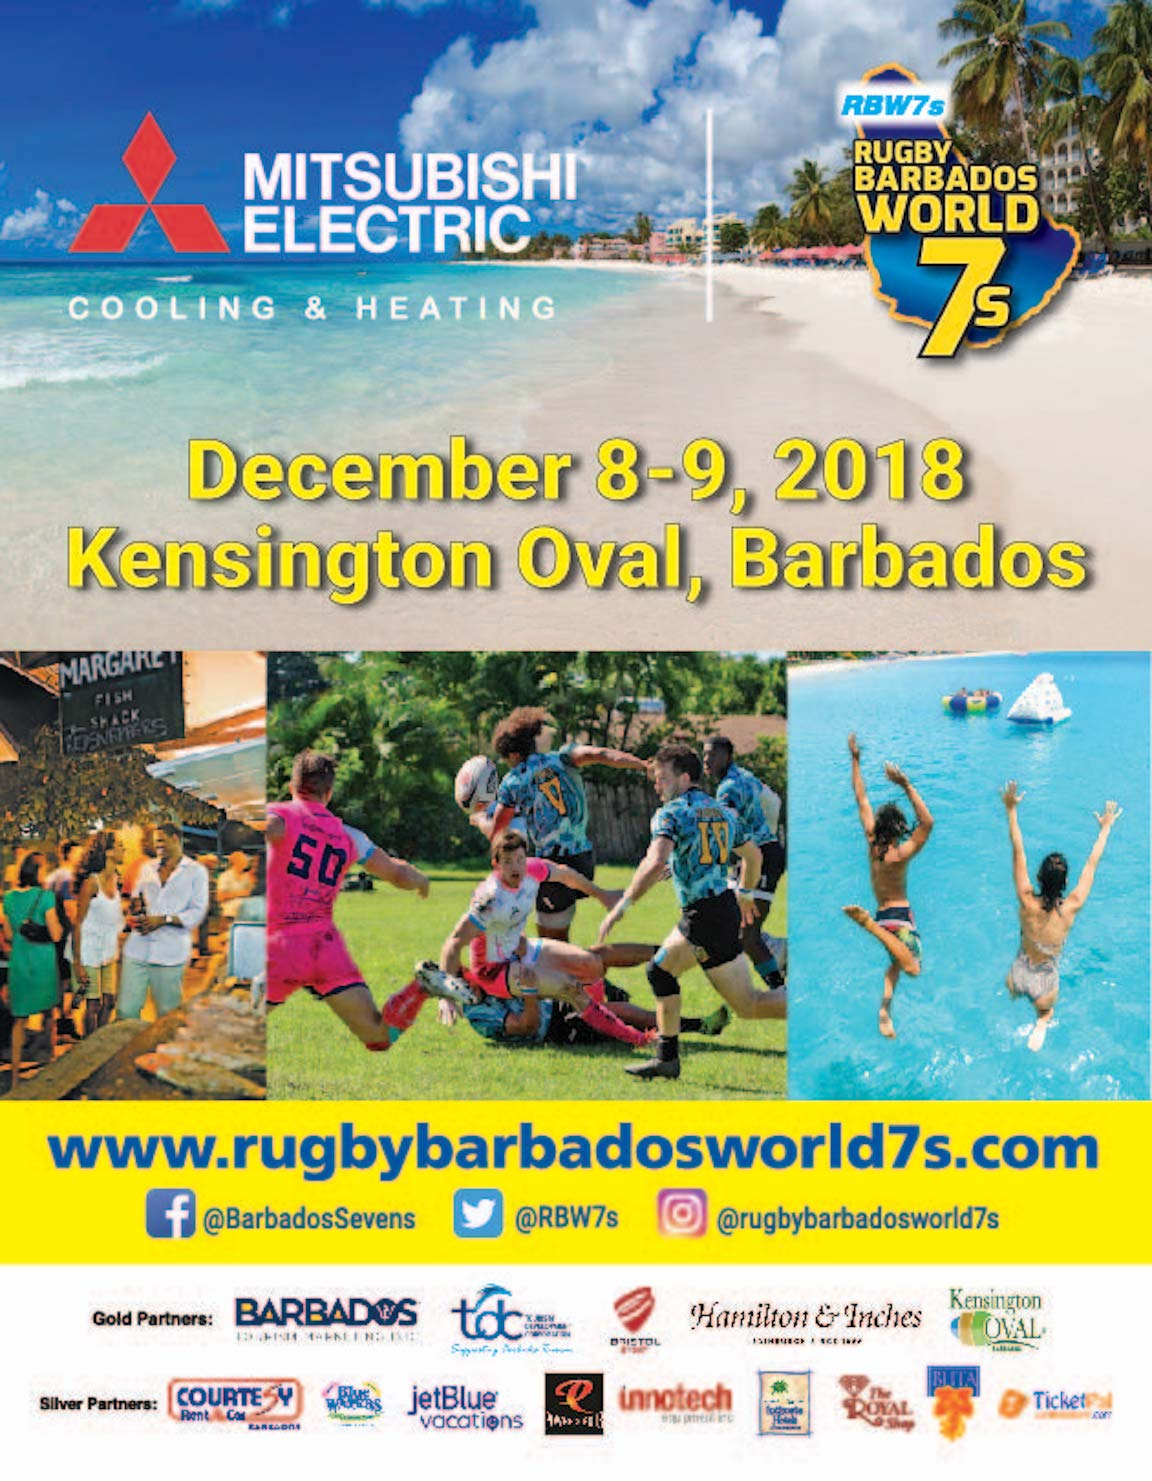 Mitsubishi Electric Rugby Barbados World 7s - Power X 4 Party Stand - Day 1